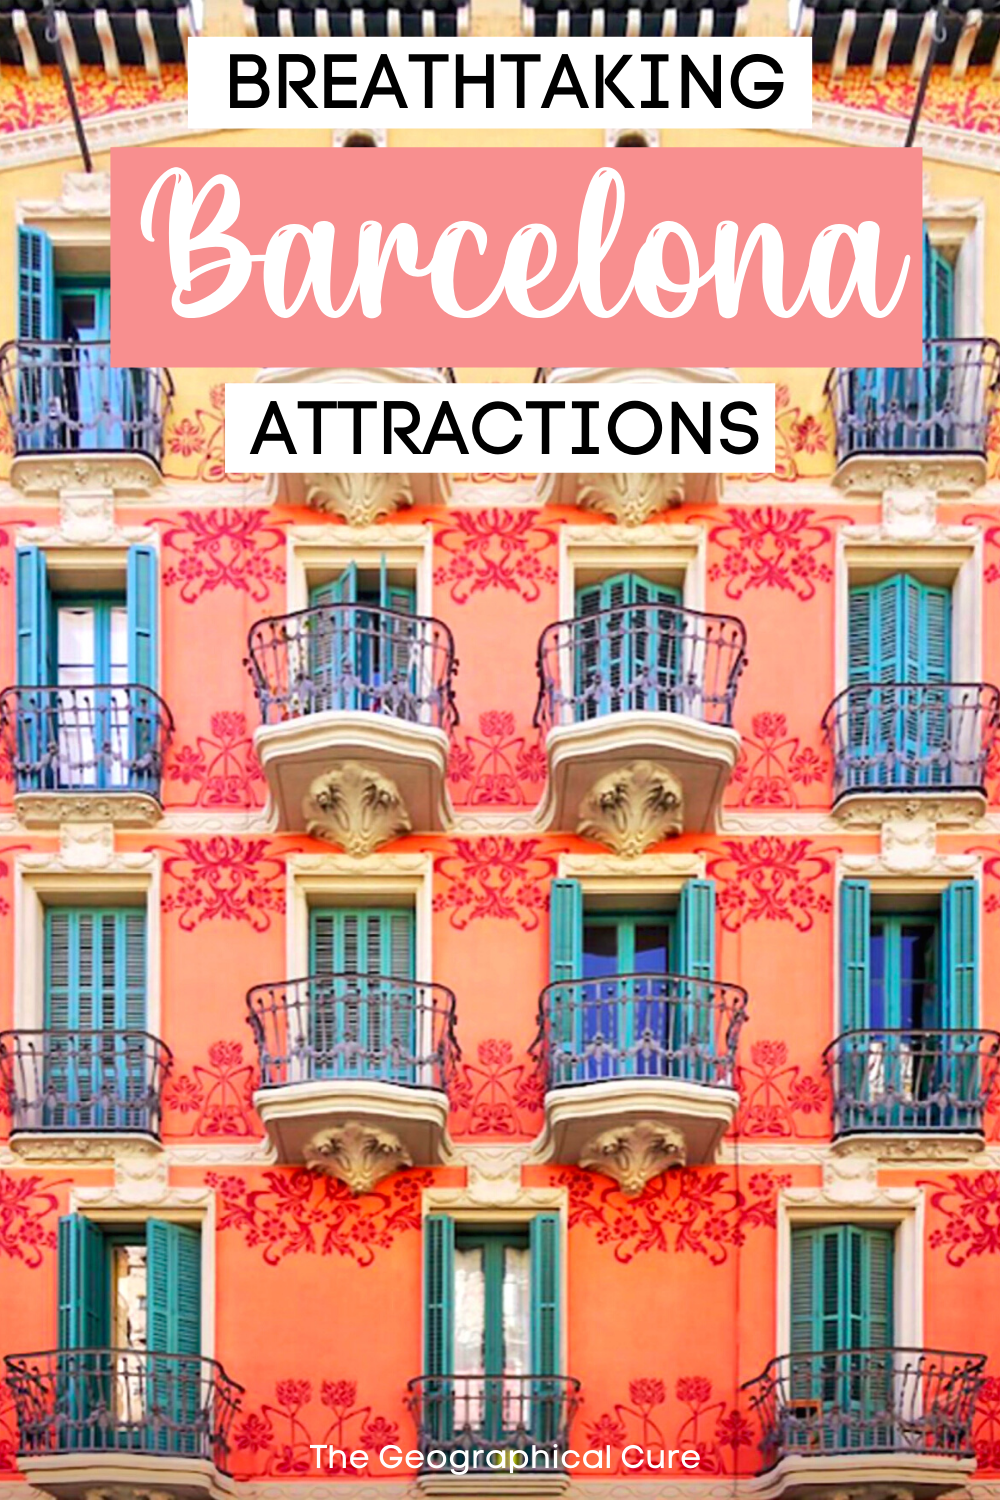 Must See Attractions in Barcelona Spain